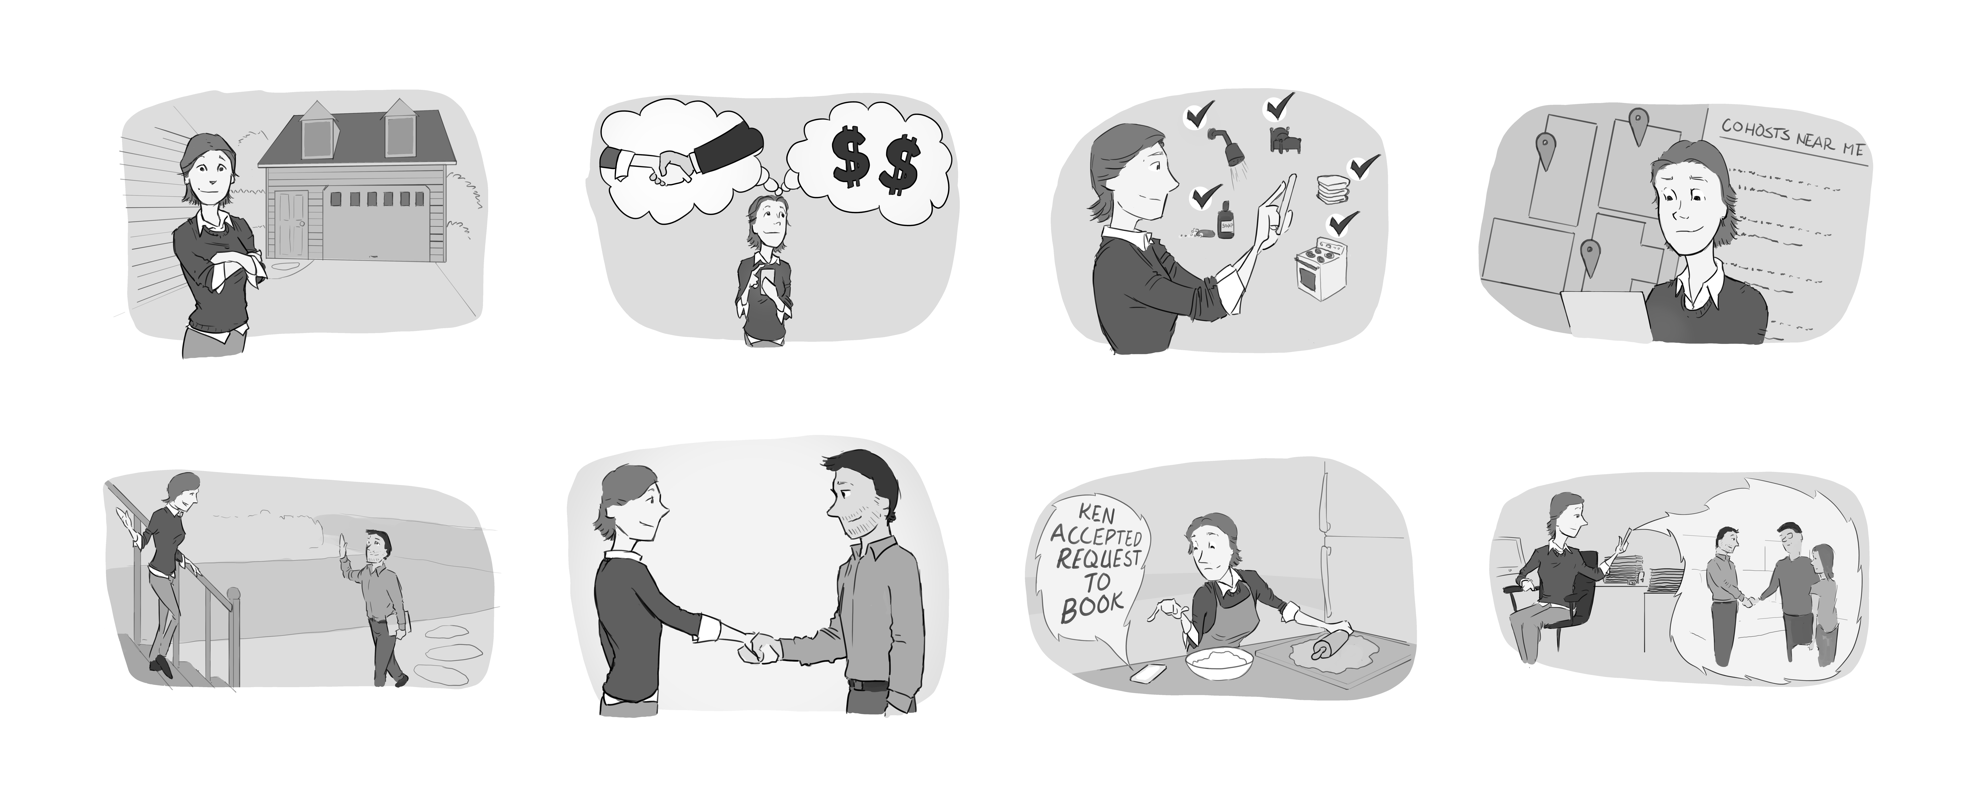 Storyboards illustrating the journey of getting help from a co-host.